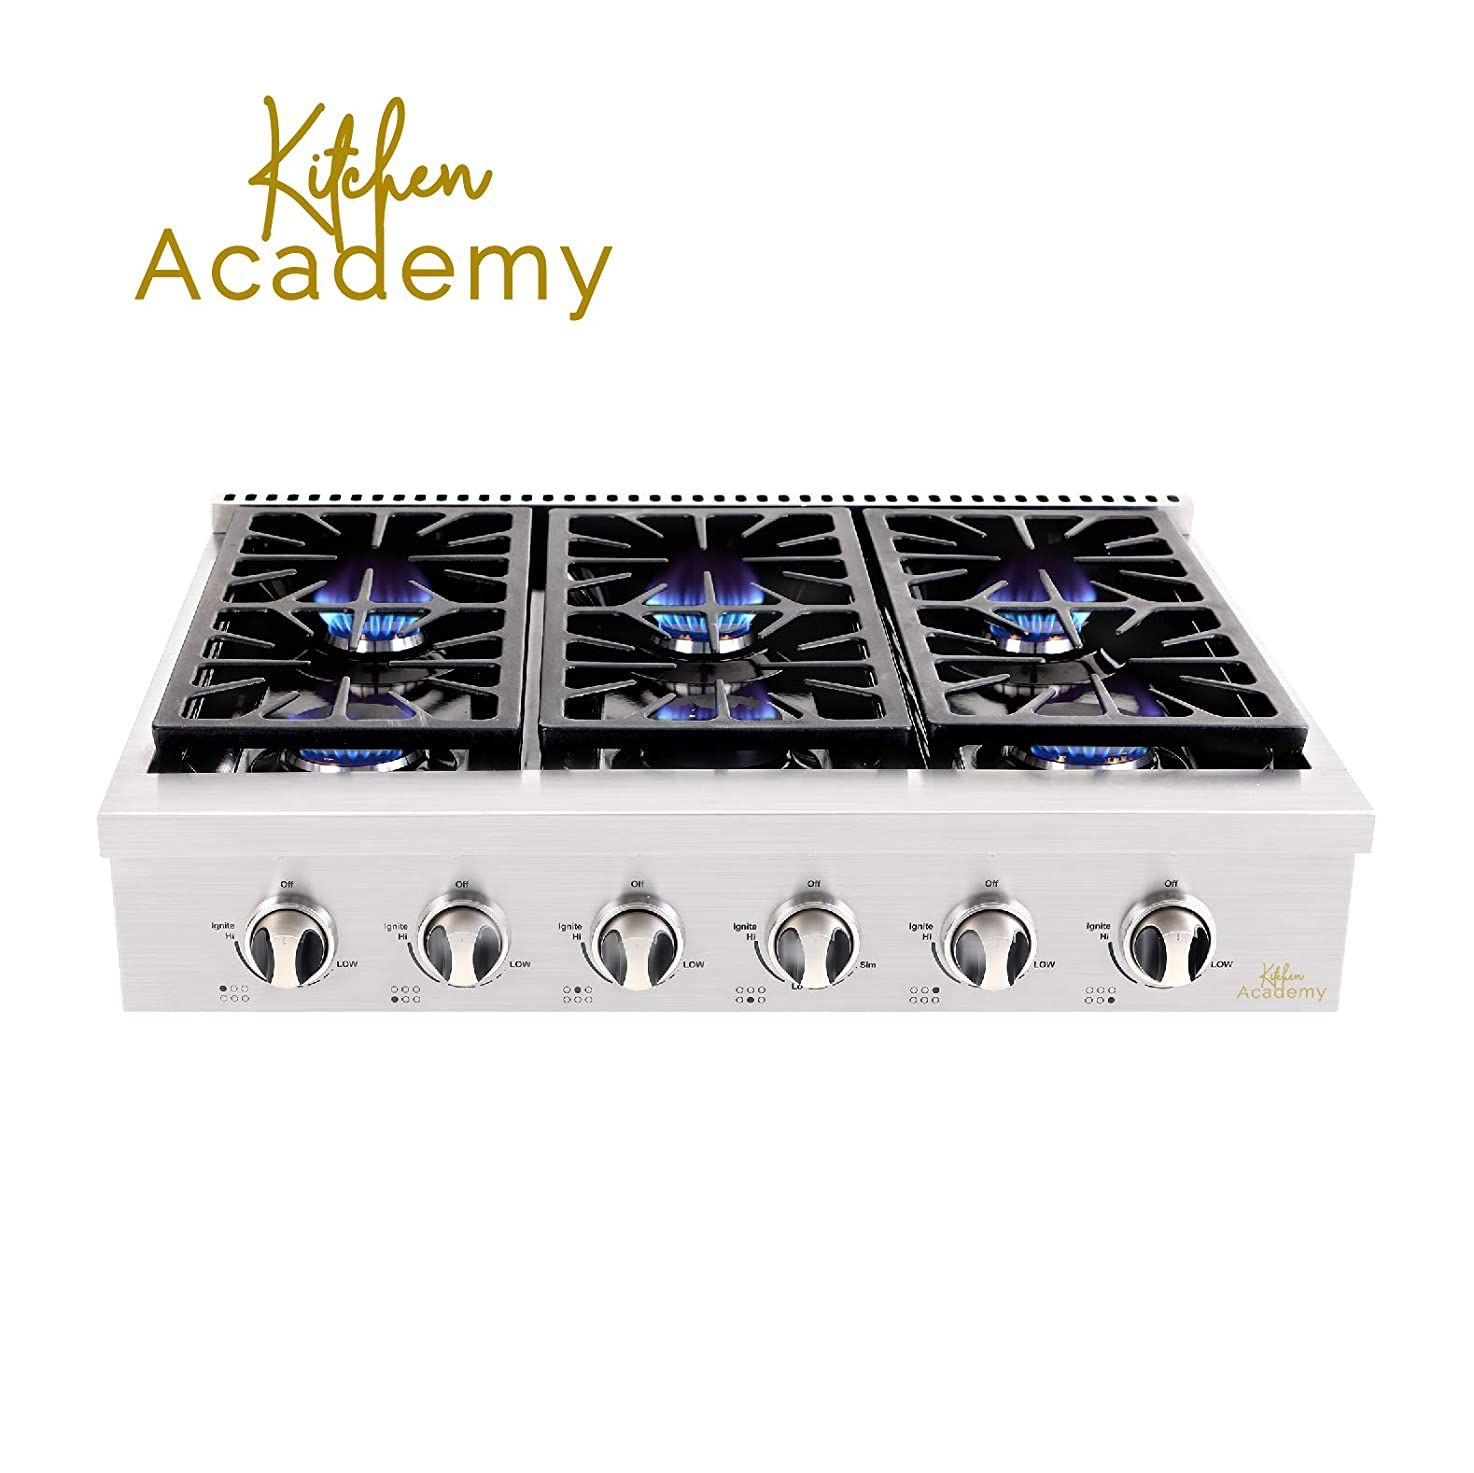 Kitchen Academy Professional 36'' Stainless Steel Gas Rangetop Cooktop with 6 Gas Burners jxjcduxibwulp4